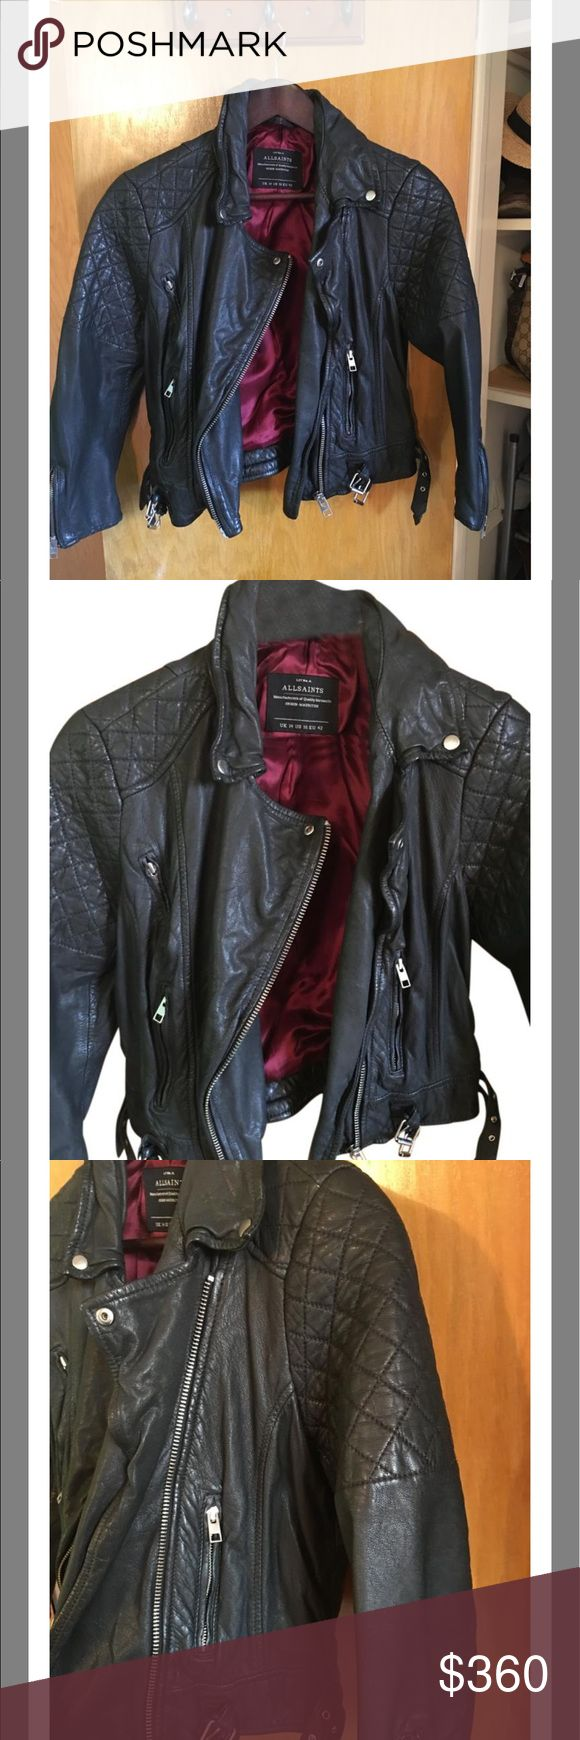 Leather jacket Leather motorcycle jacket allsaints Jackets & Coats